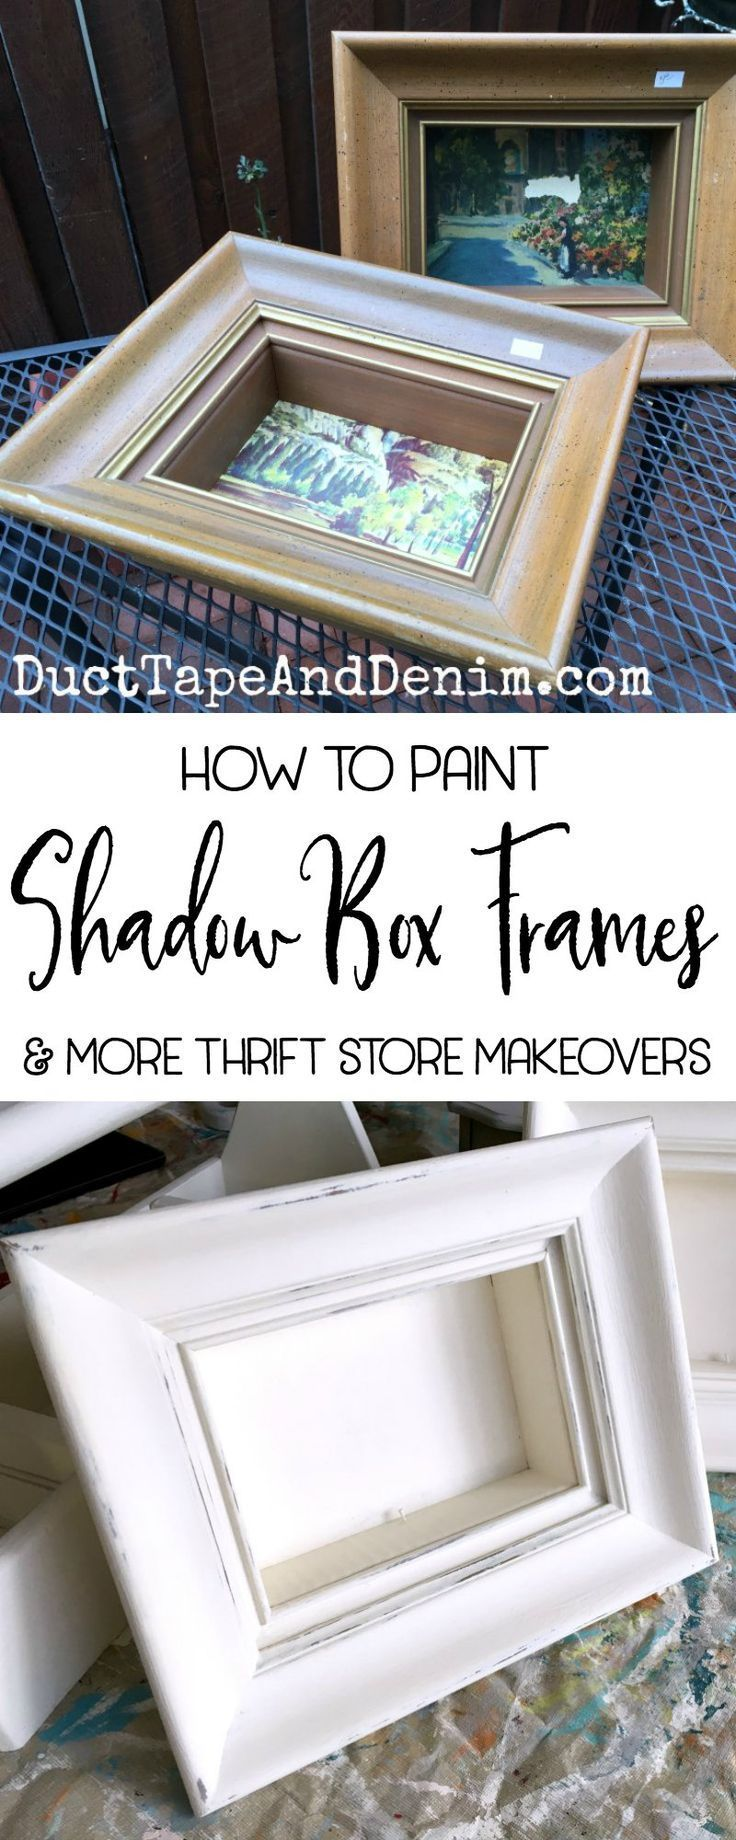 994 best thrift store makeovers images on pinterest how to paint shadow box frames to display vintage collections our monthly upcycle challenge jeuxipadfo Image collections